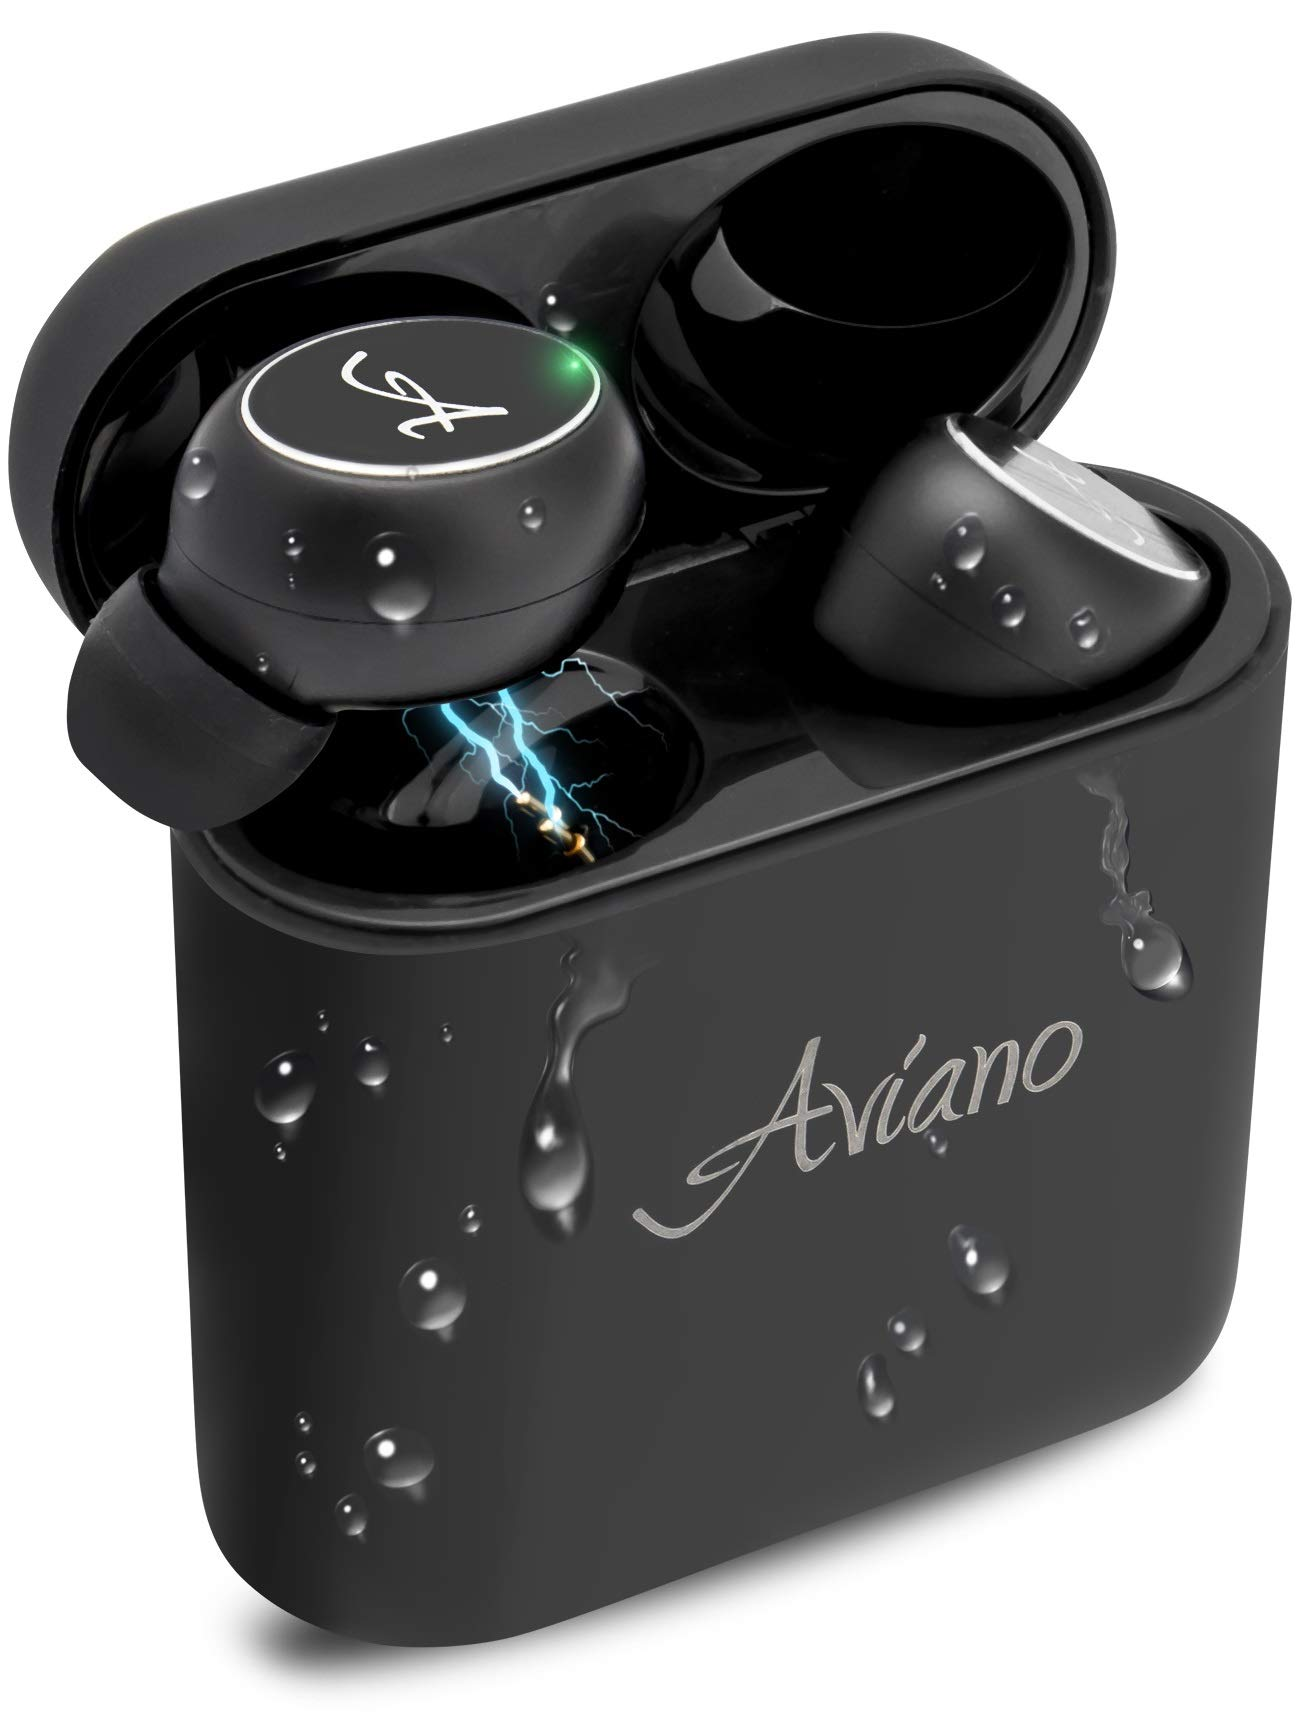 Smart Bluetooth Earbuds for iPhone & Android - True Wireless Bluetooth 5.0 Headphones w/Noise Cancelling, 3D Stereo Sound, Mic & Portable Charging Case by Aviano